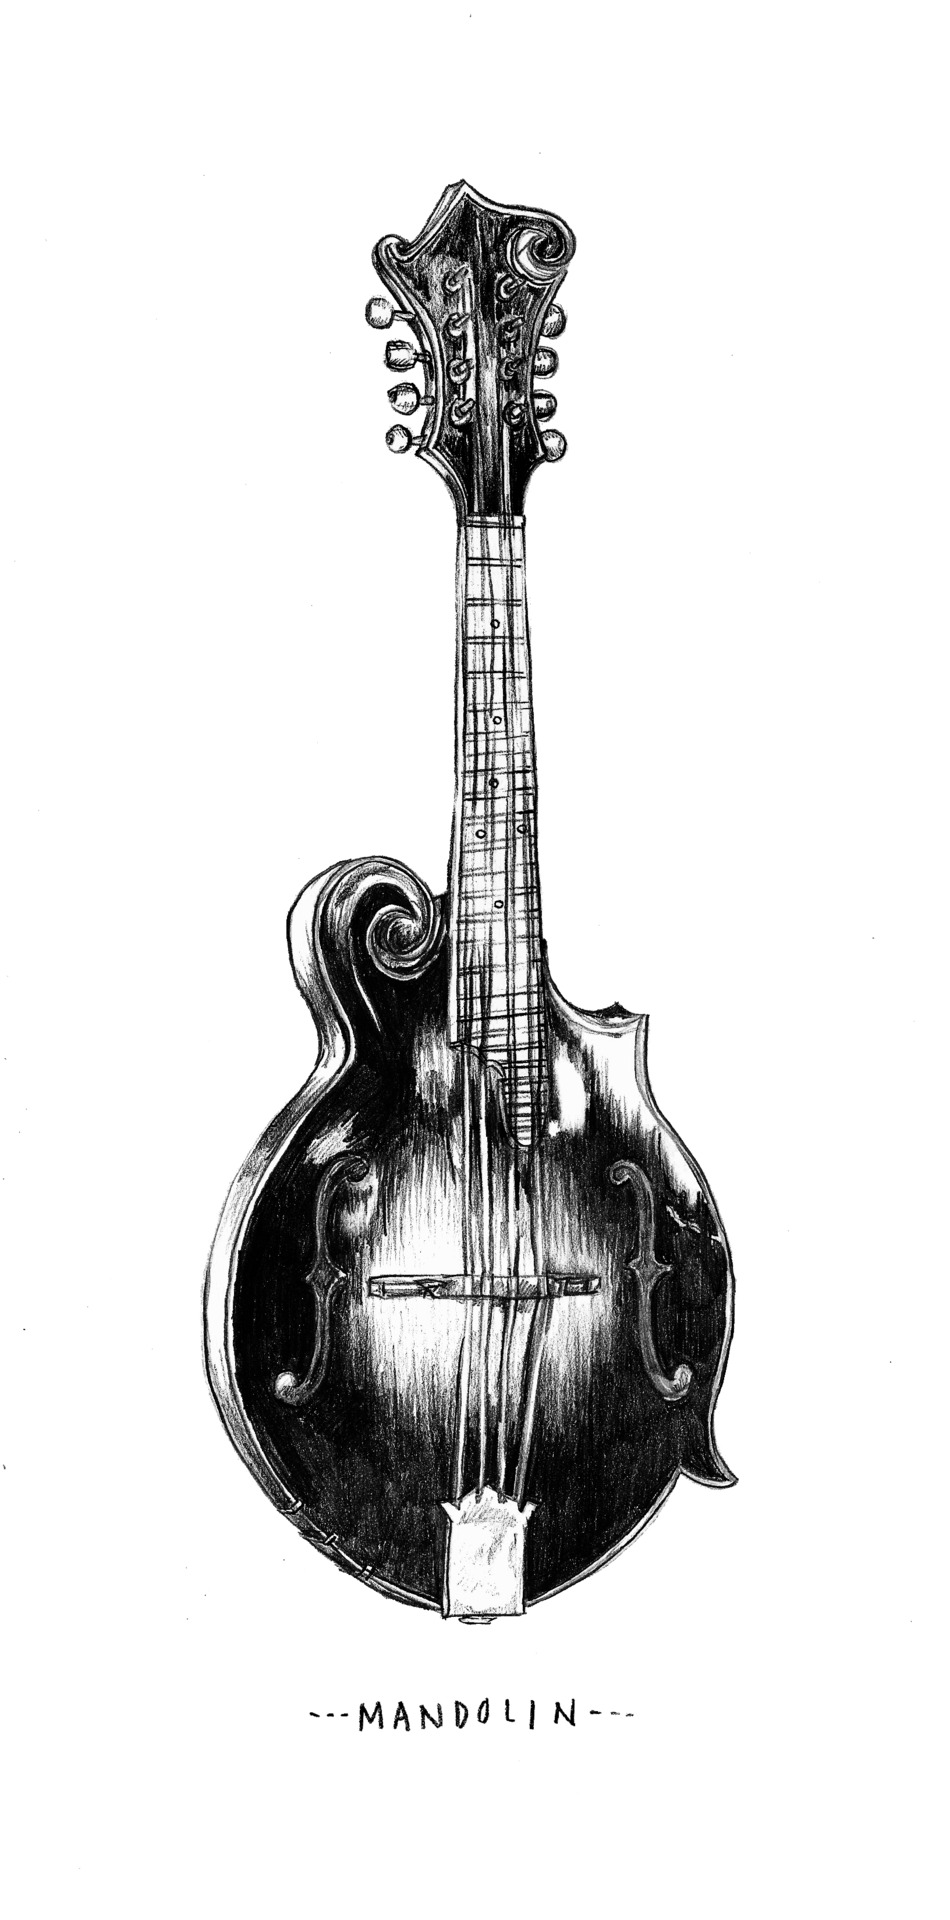 Drawn music old style Work Music been? to you